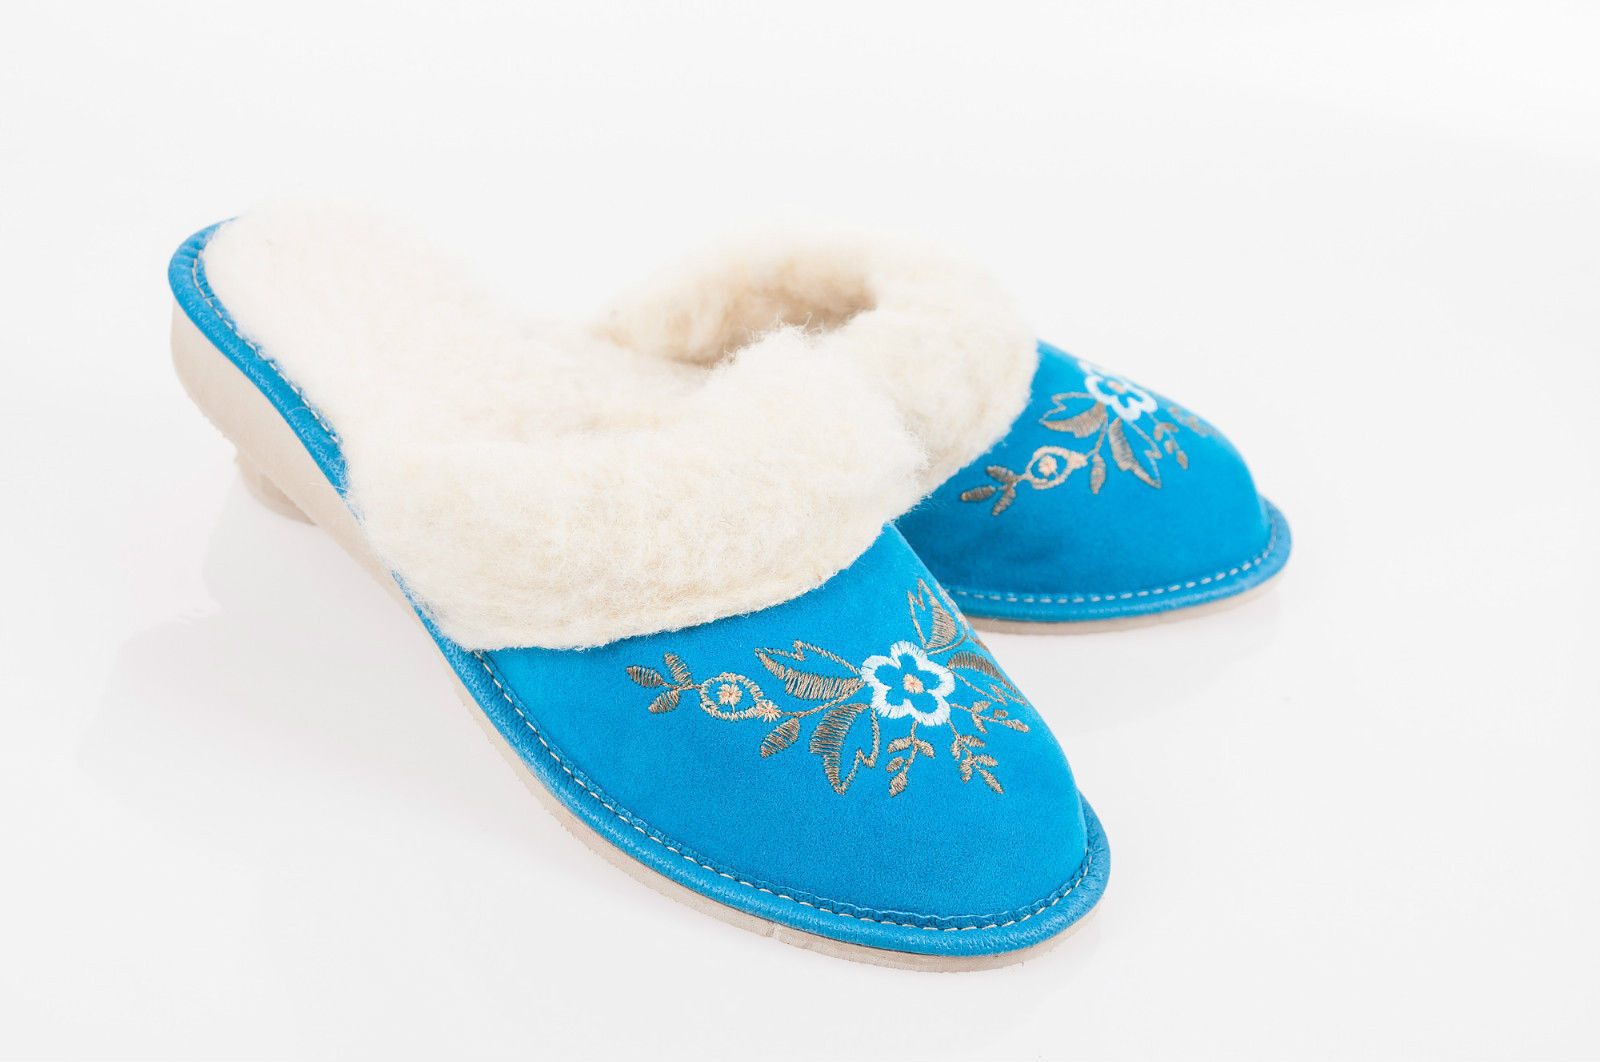 Women Blue 100% Suede Leather Slippers Wool Shoes Size 3 8 4 5 6 7 8 3 Flip-Flop F 479515